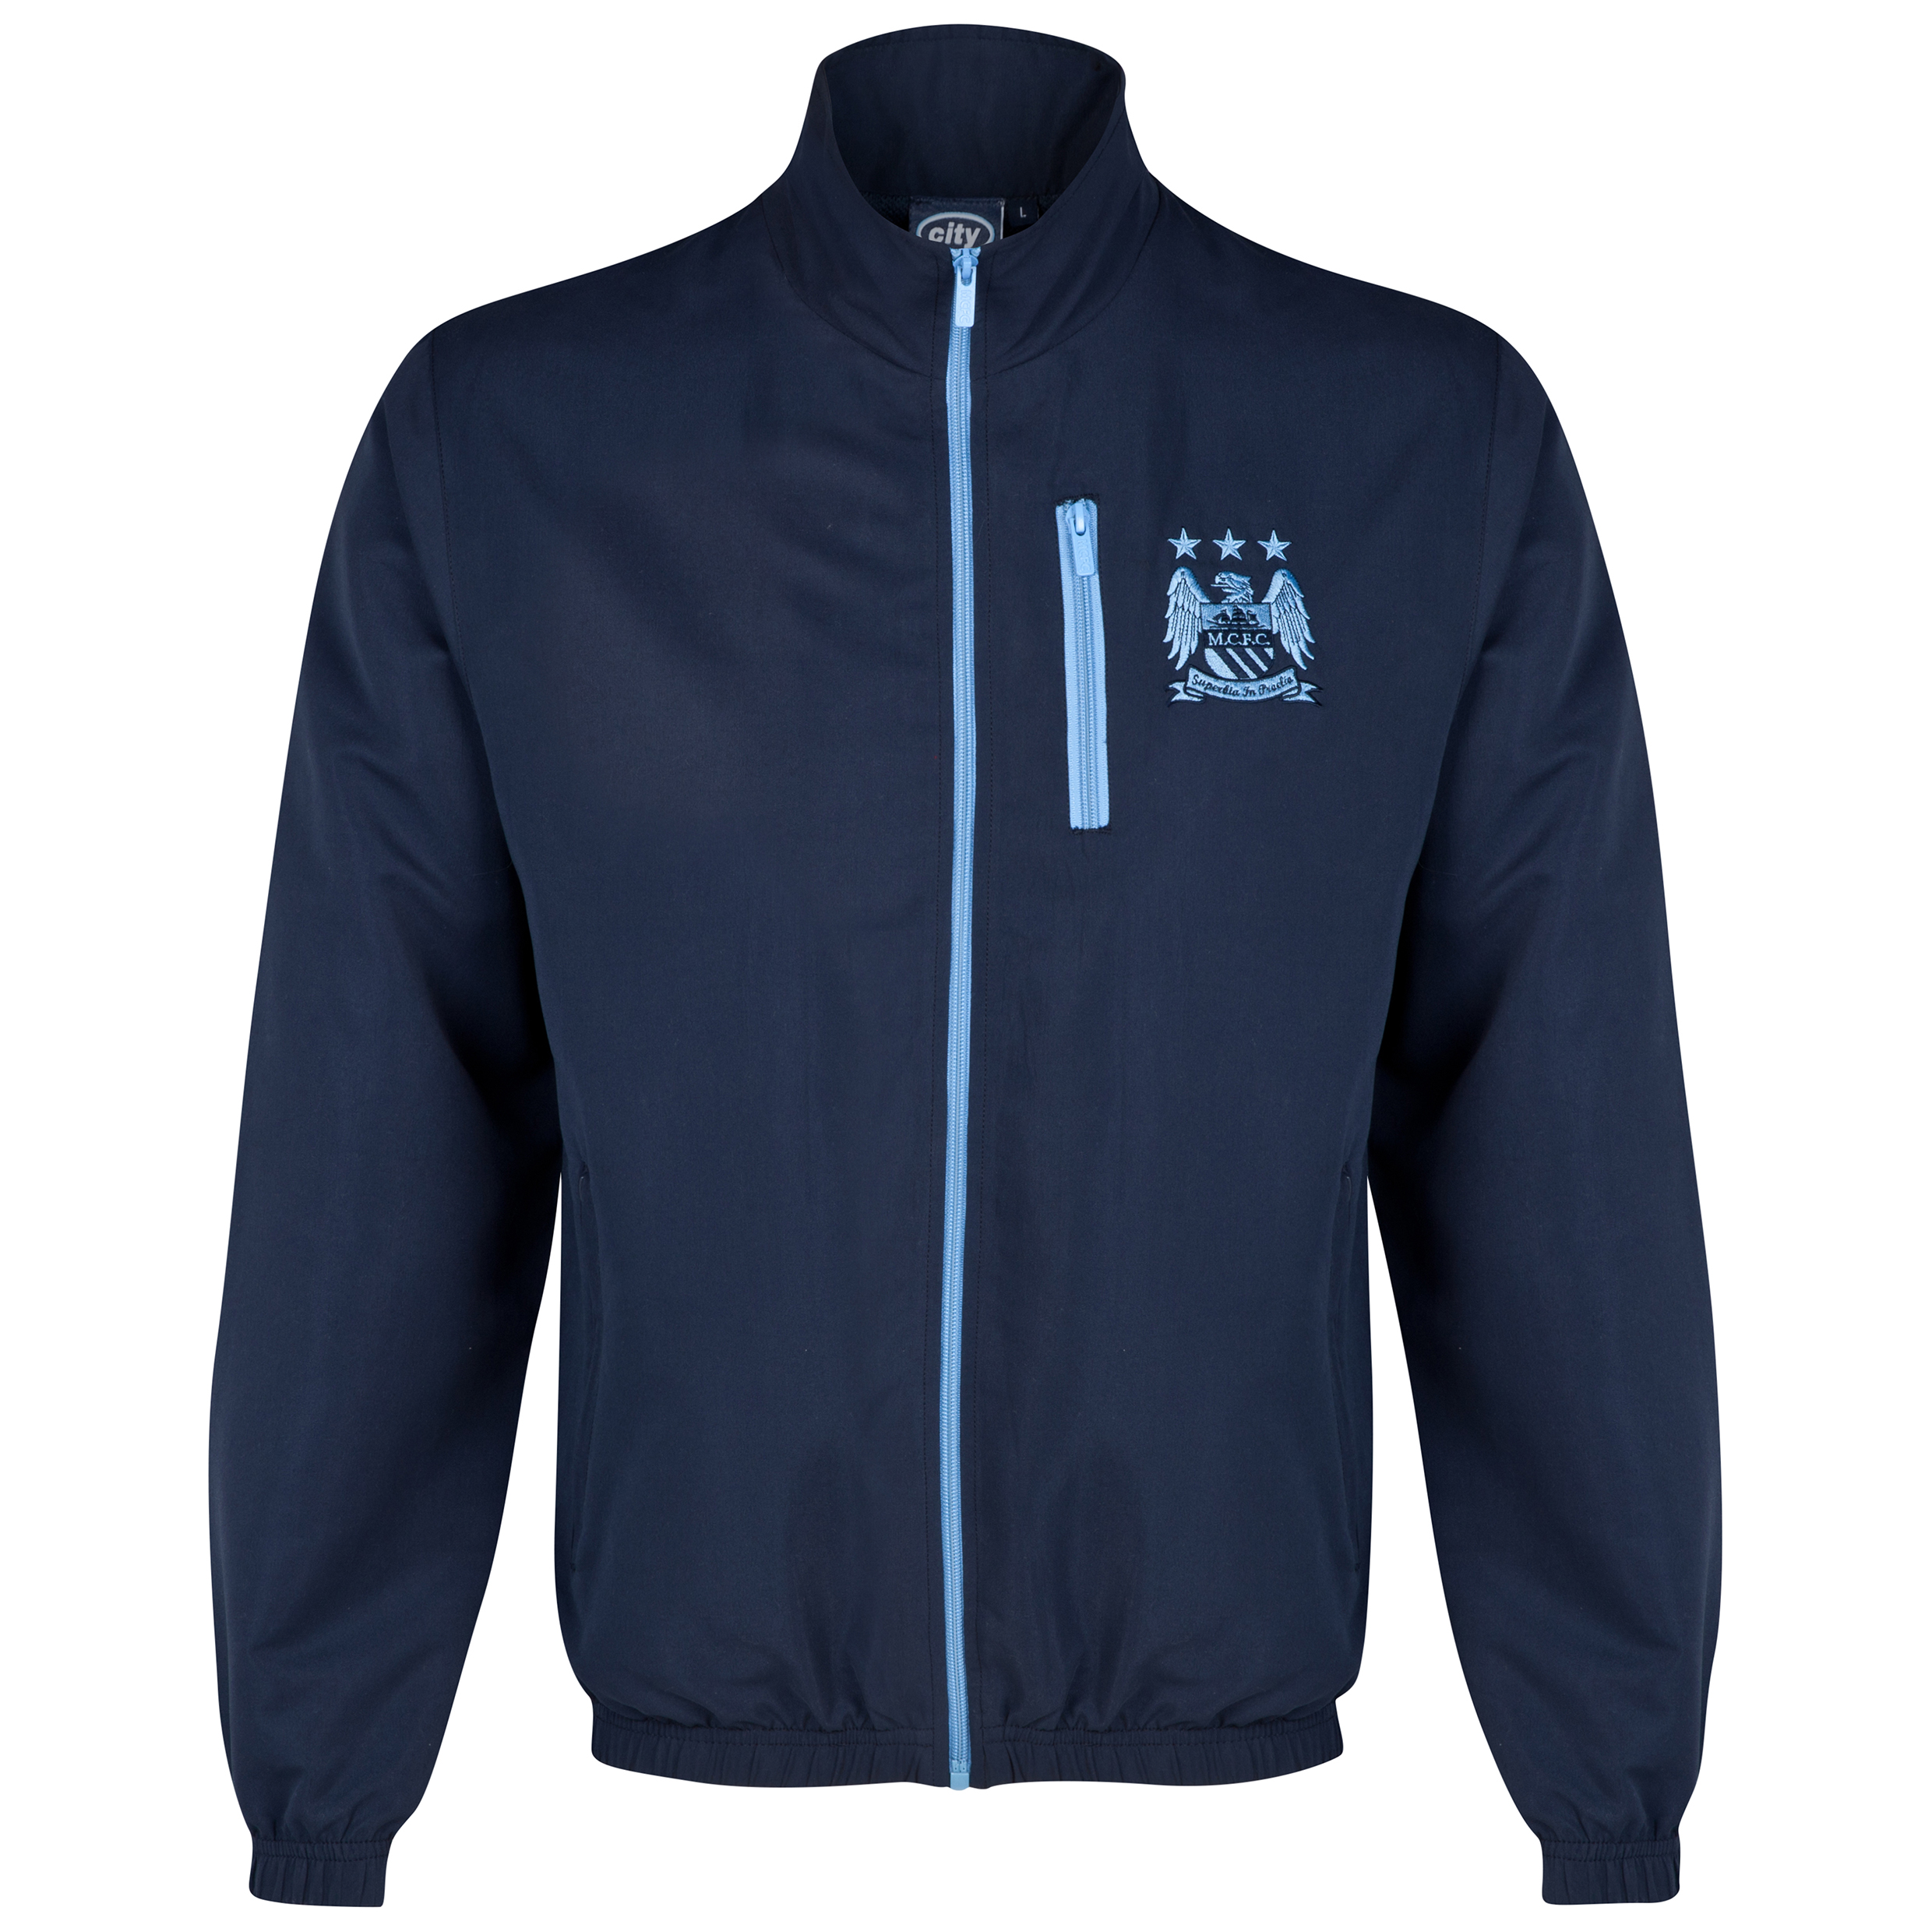 Manchester City Classic Track Jacket - Navy - Mens